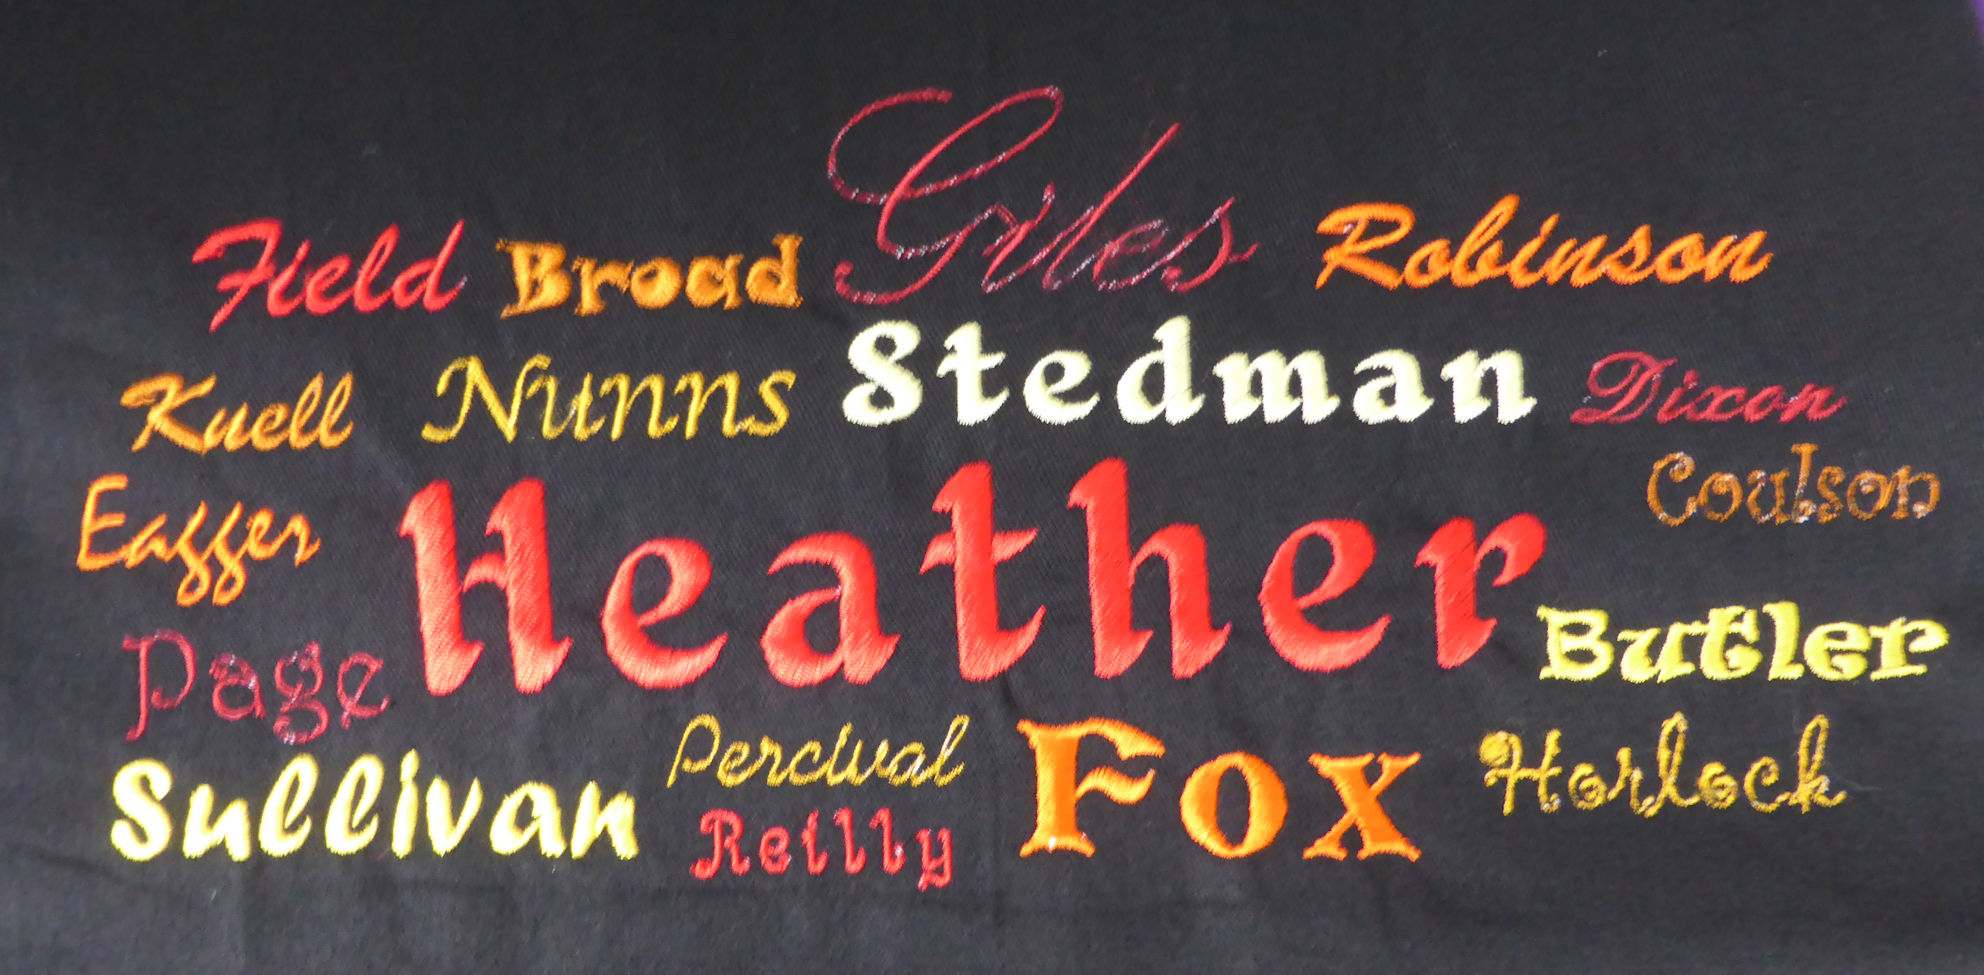 Heather apron close up